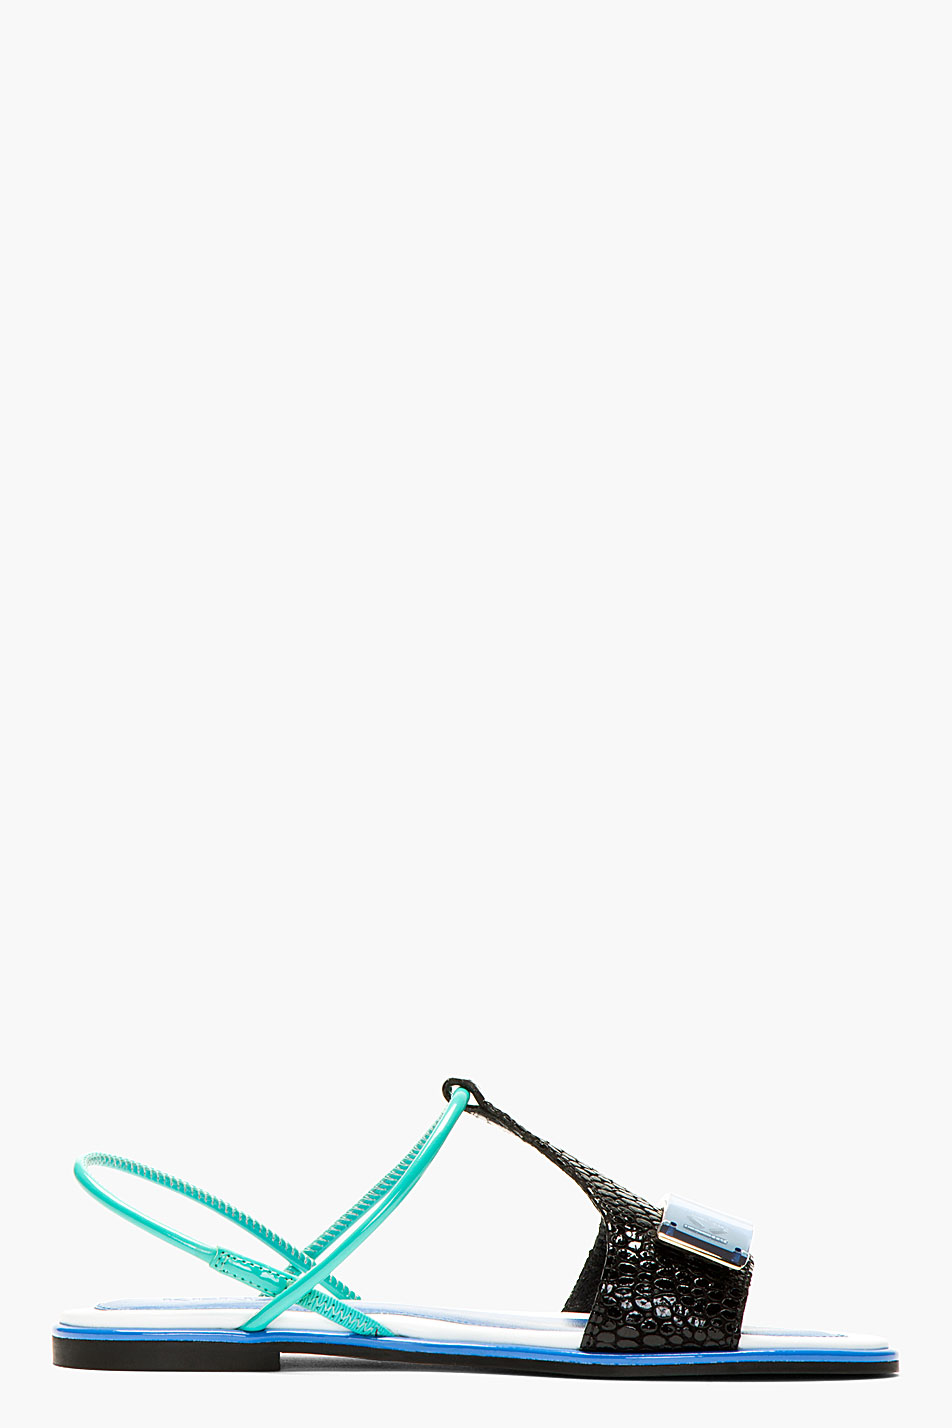 Kenzo black and turquoise tao flat sandals